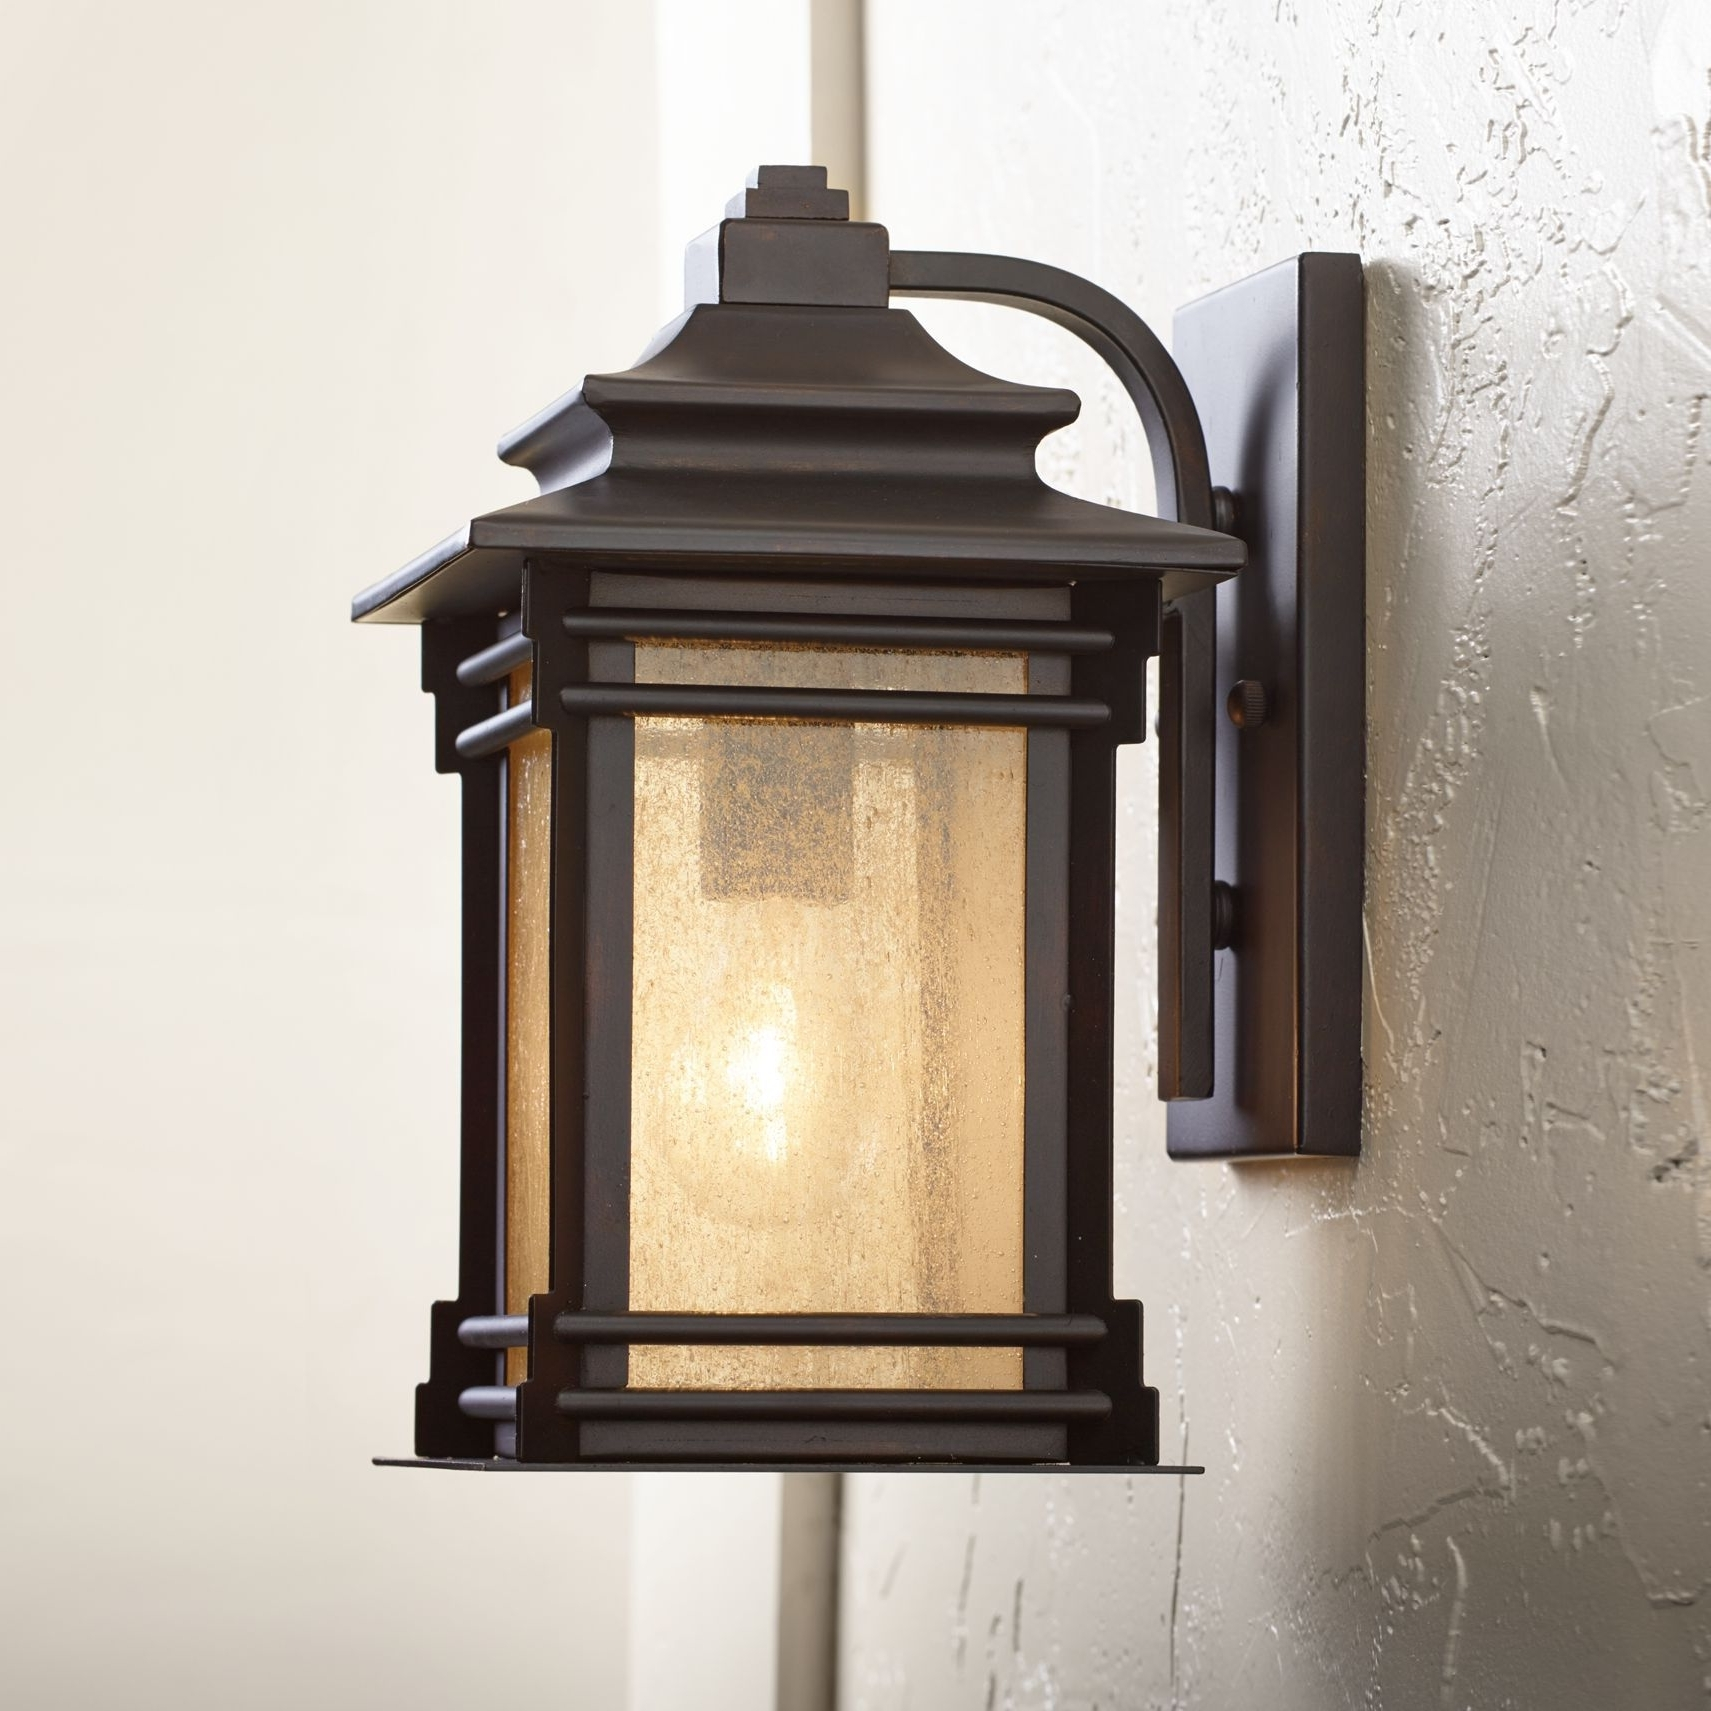 Outdoor: Lowes Motion Detector Outdoor Lights Lowes Outdoor Flood Throughout Most Recently Released Outdoor Lanterns At Lowes (View 14 of 20)